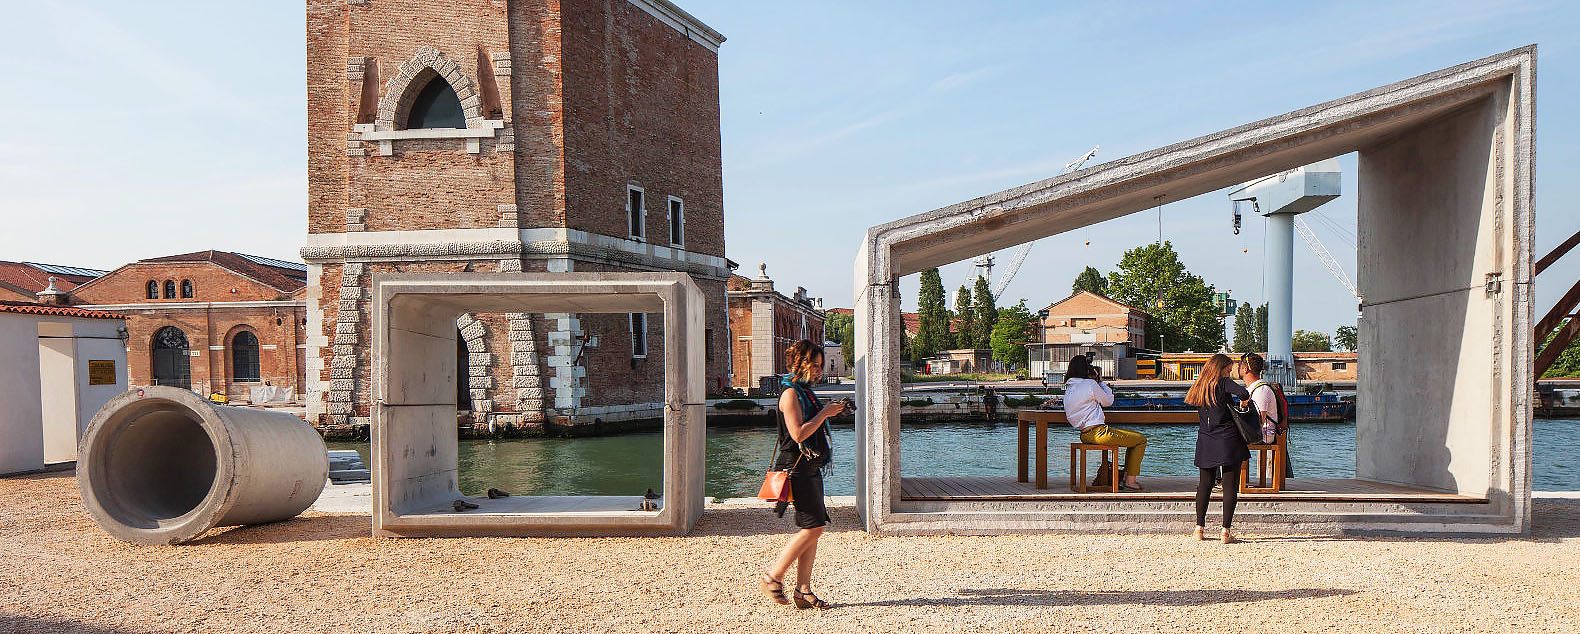 Stripped Down Modular Gomos Homes Inspired By Sewage Pipes Pop Up In Venice